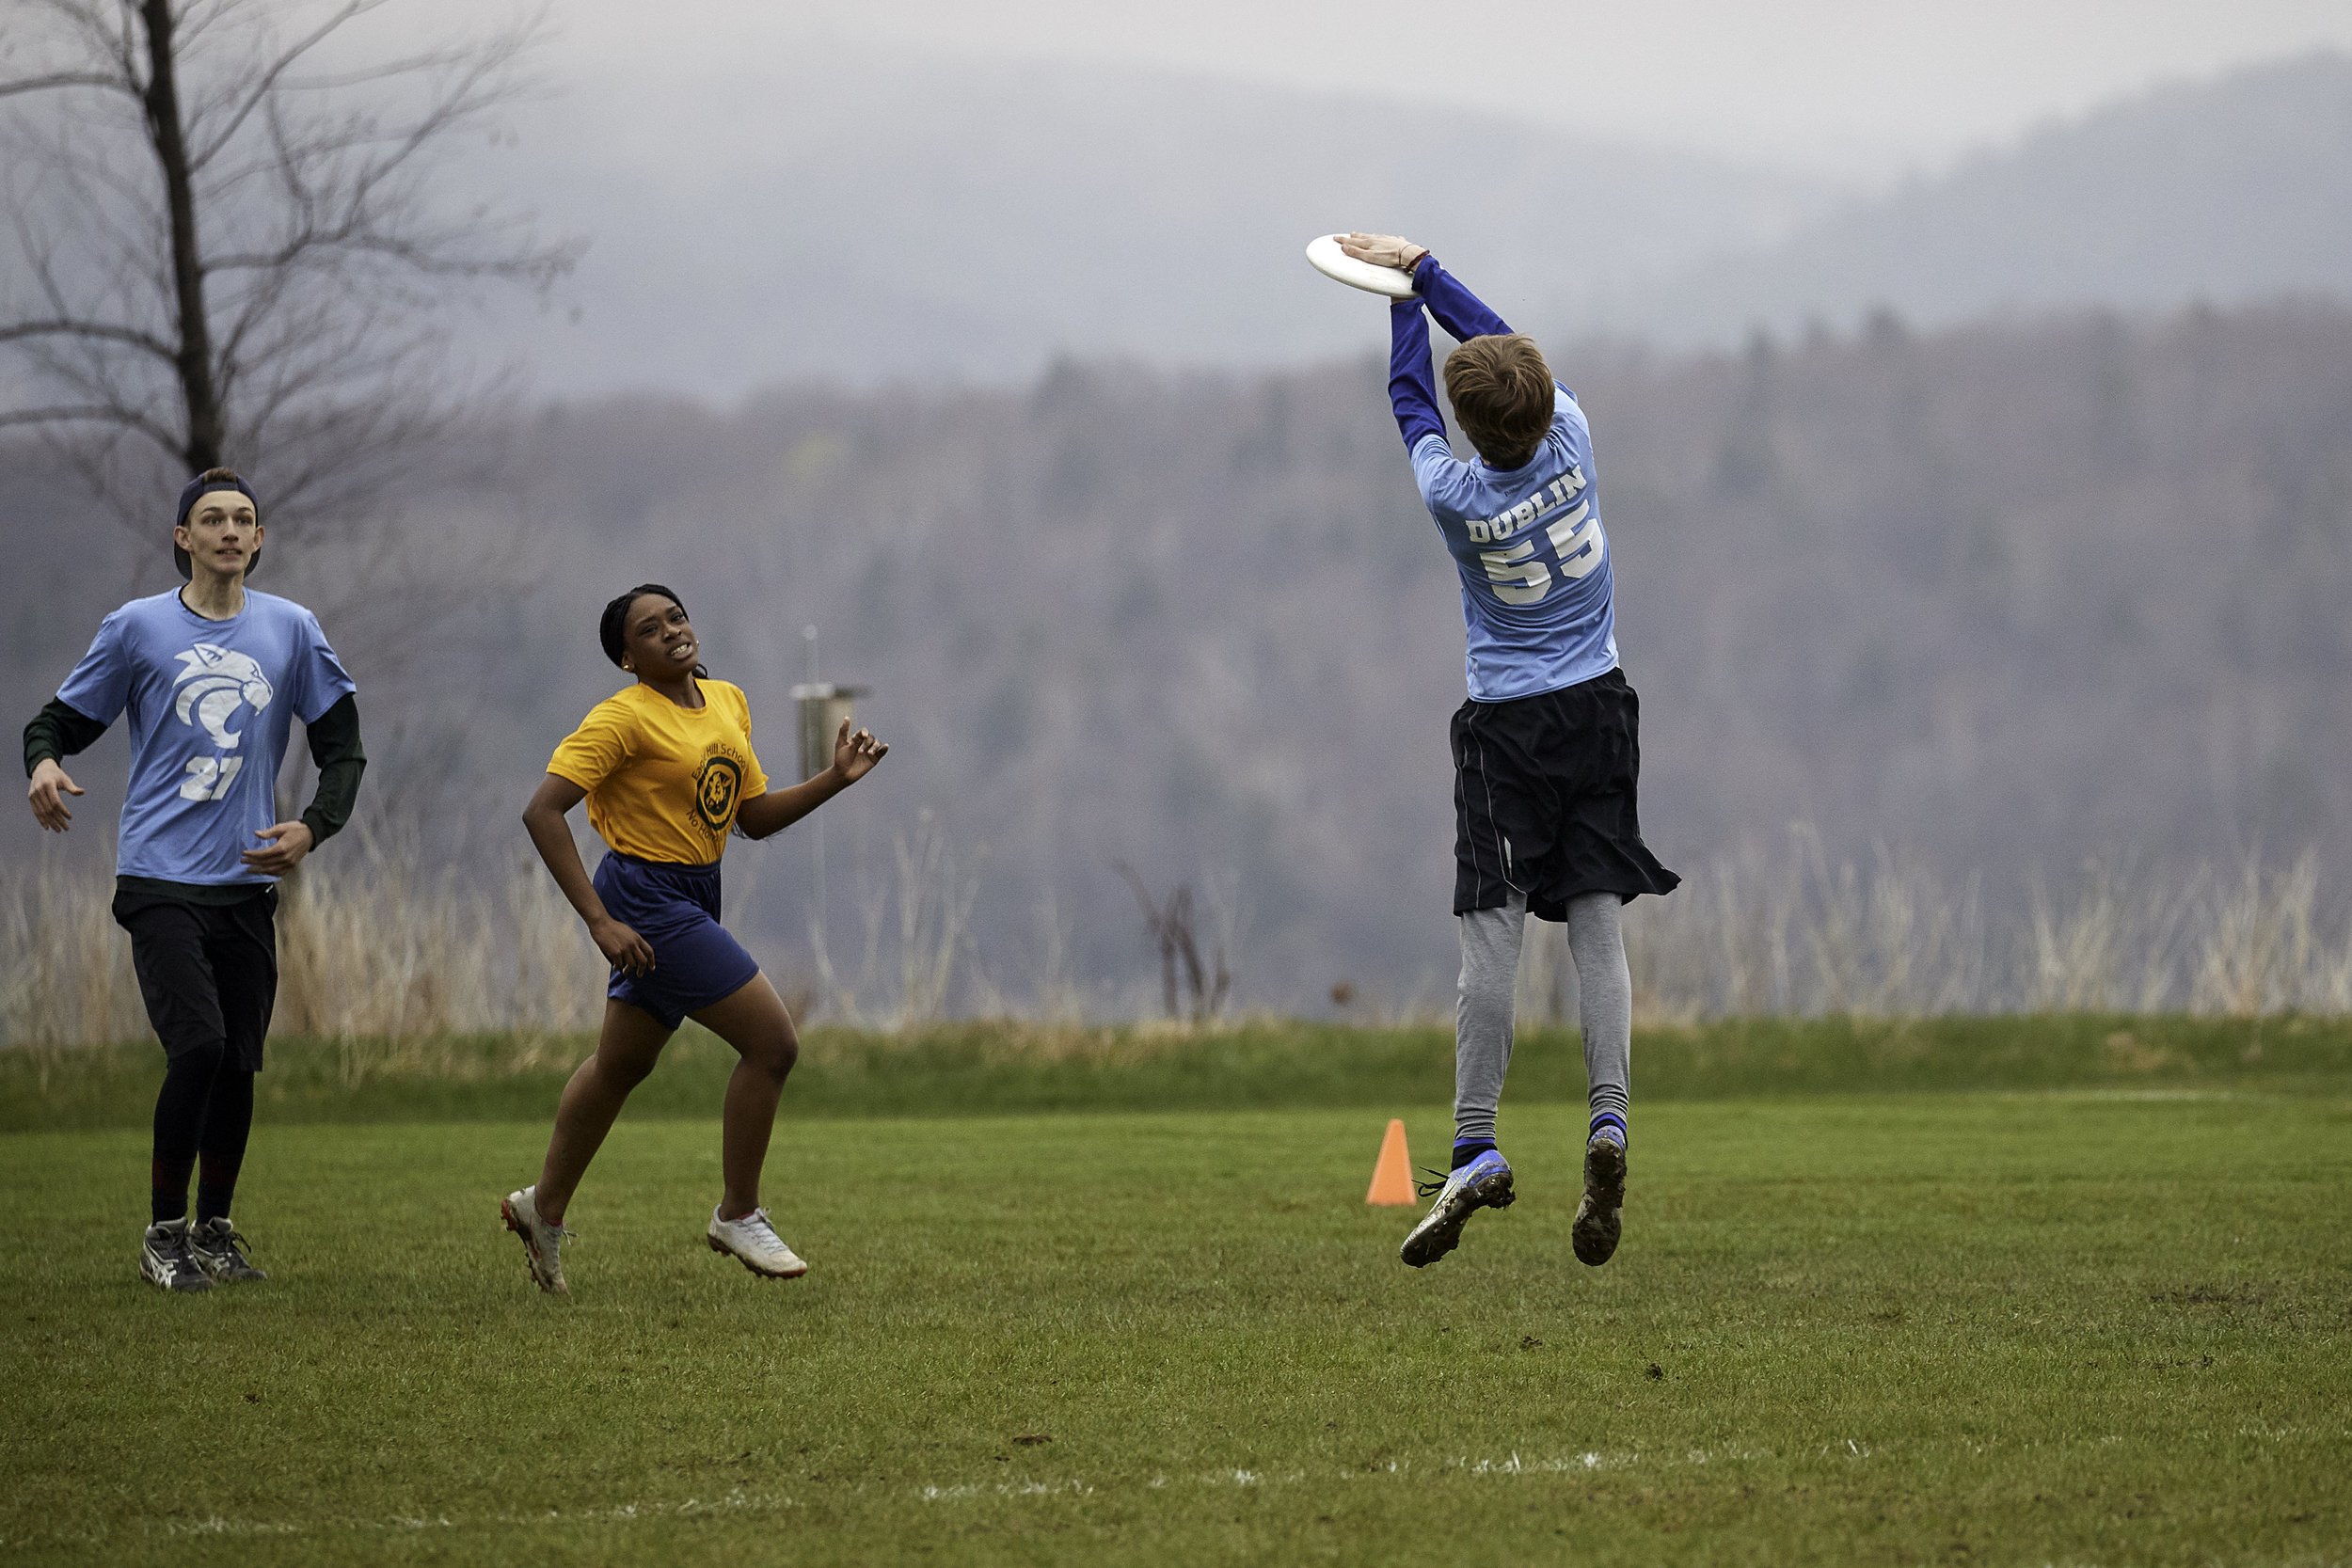 Ultimate Frisbee vs. Eagle Hill School - May 3, 2019 - 188529.jpg